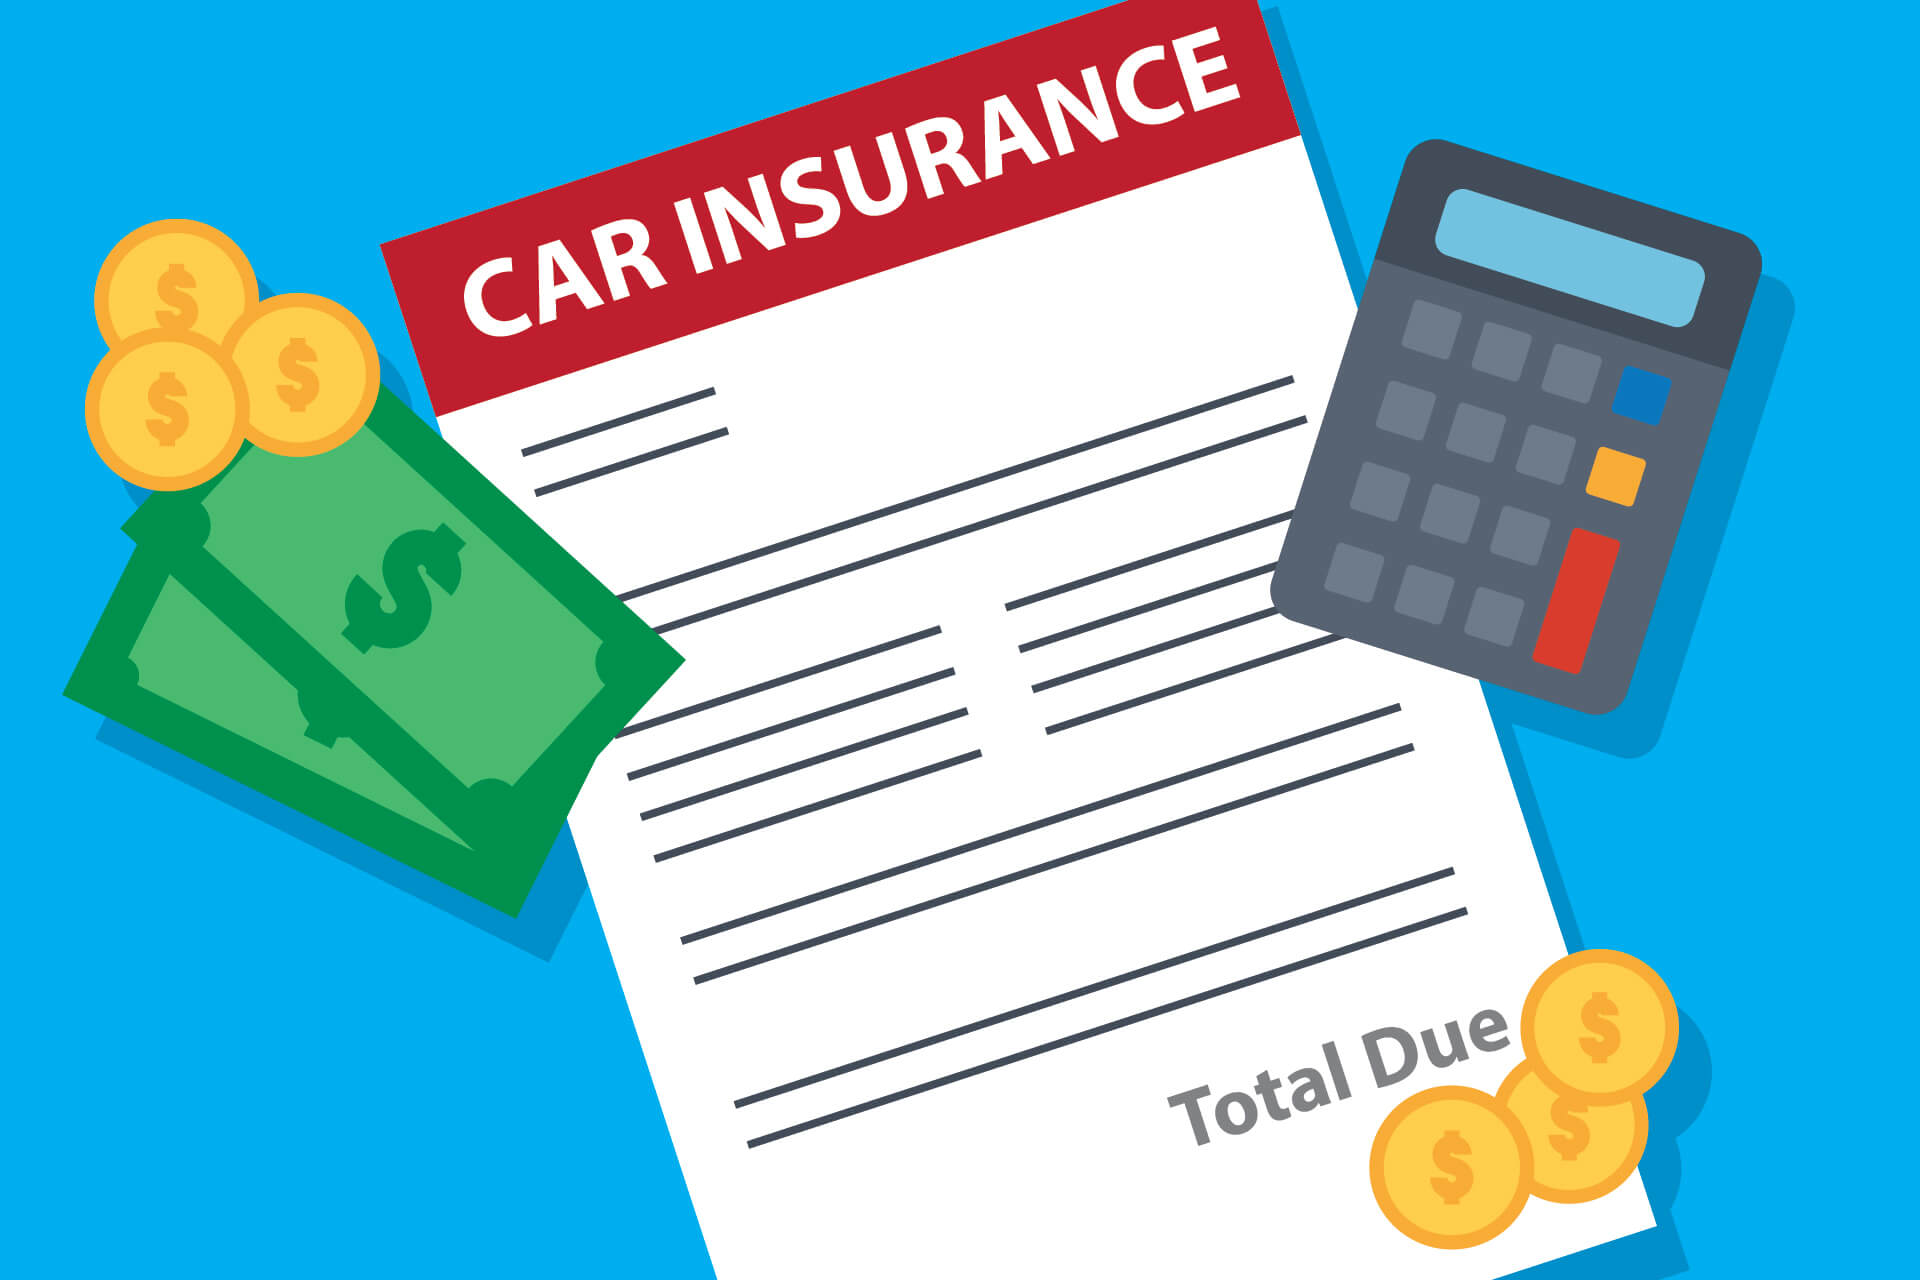 Car insurance bill total due free image download